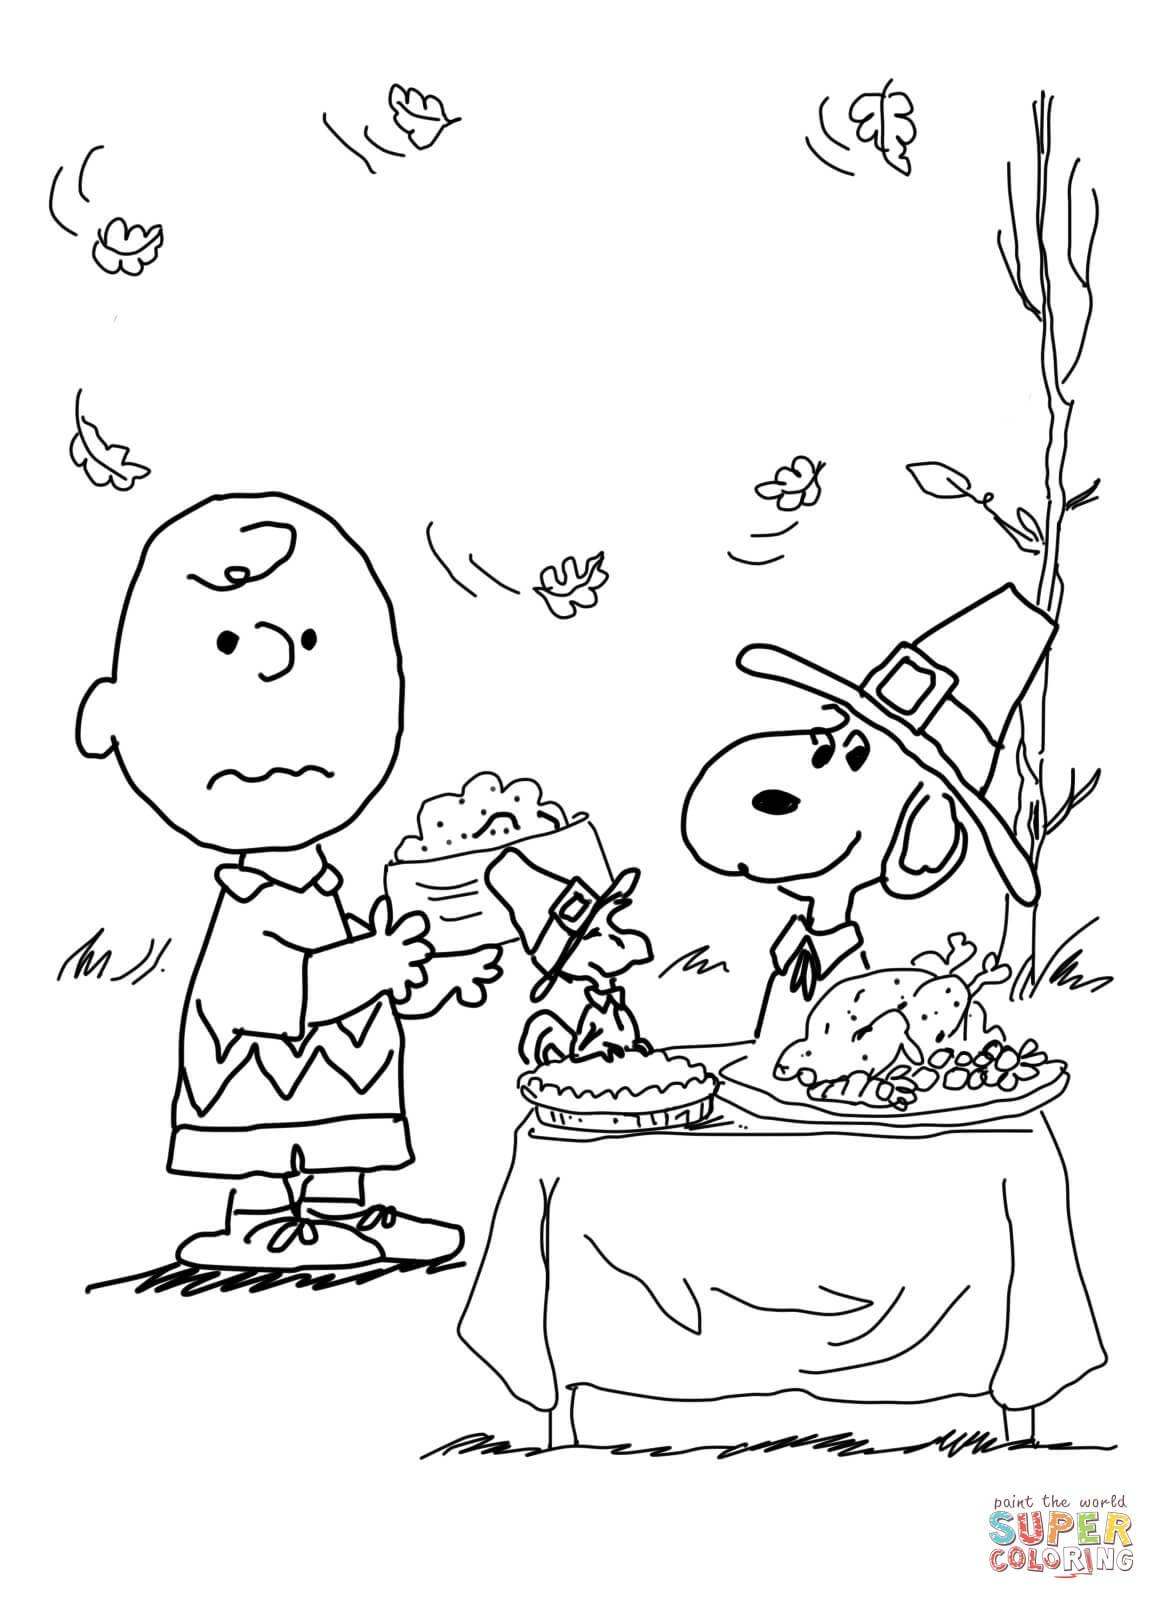 Charlie Brown Thanksgiving Coloring Page | Free Printable Coloring Pages - Free Printable Charlie Brown Halloween Coloring Pages